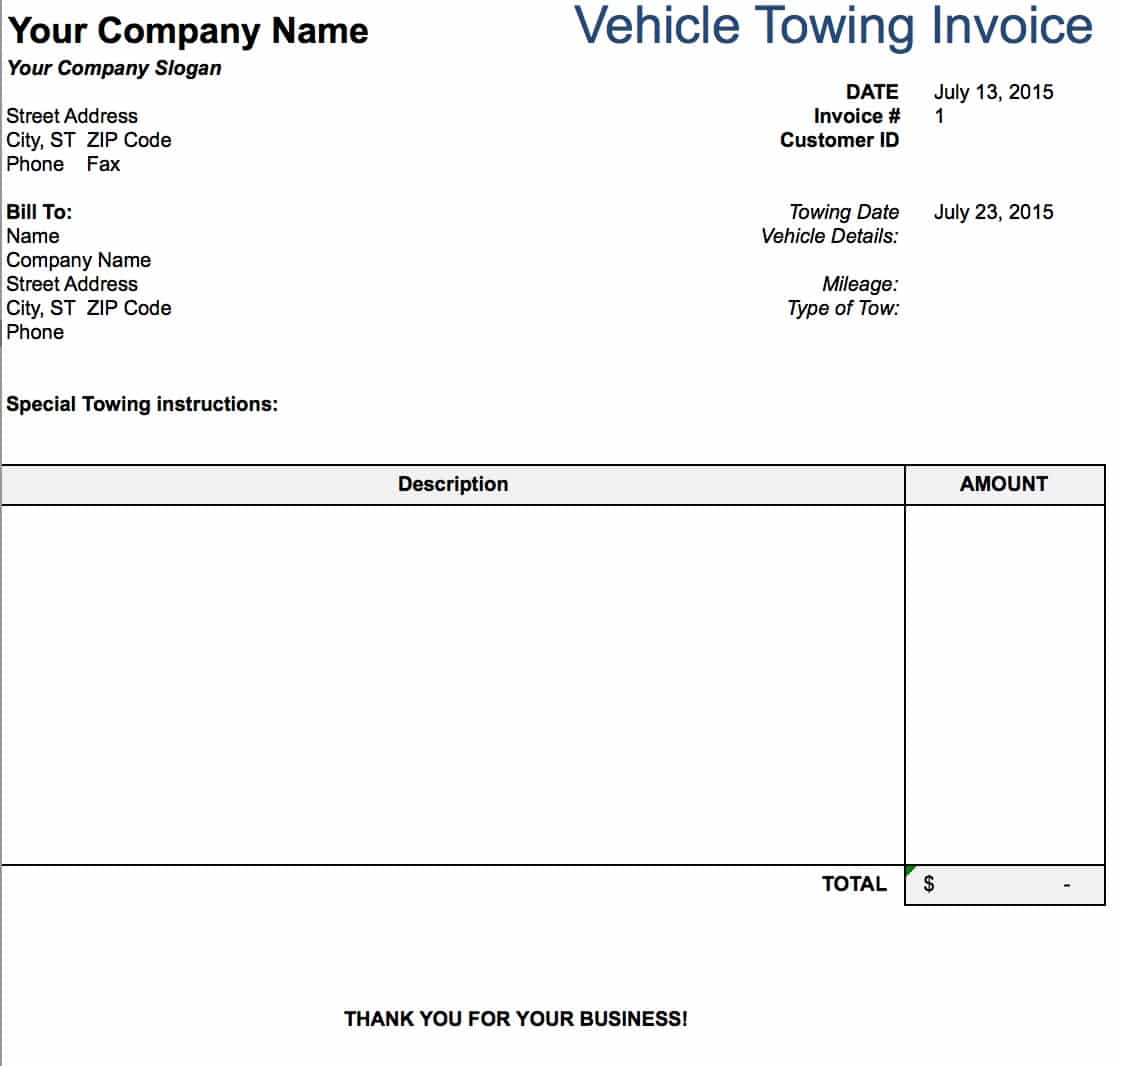 Free Tow Service Invoice Template Excel PDF Word Doc - Invoices templates free for service business